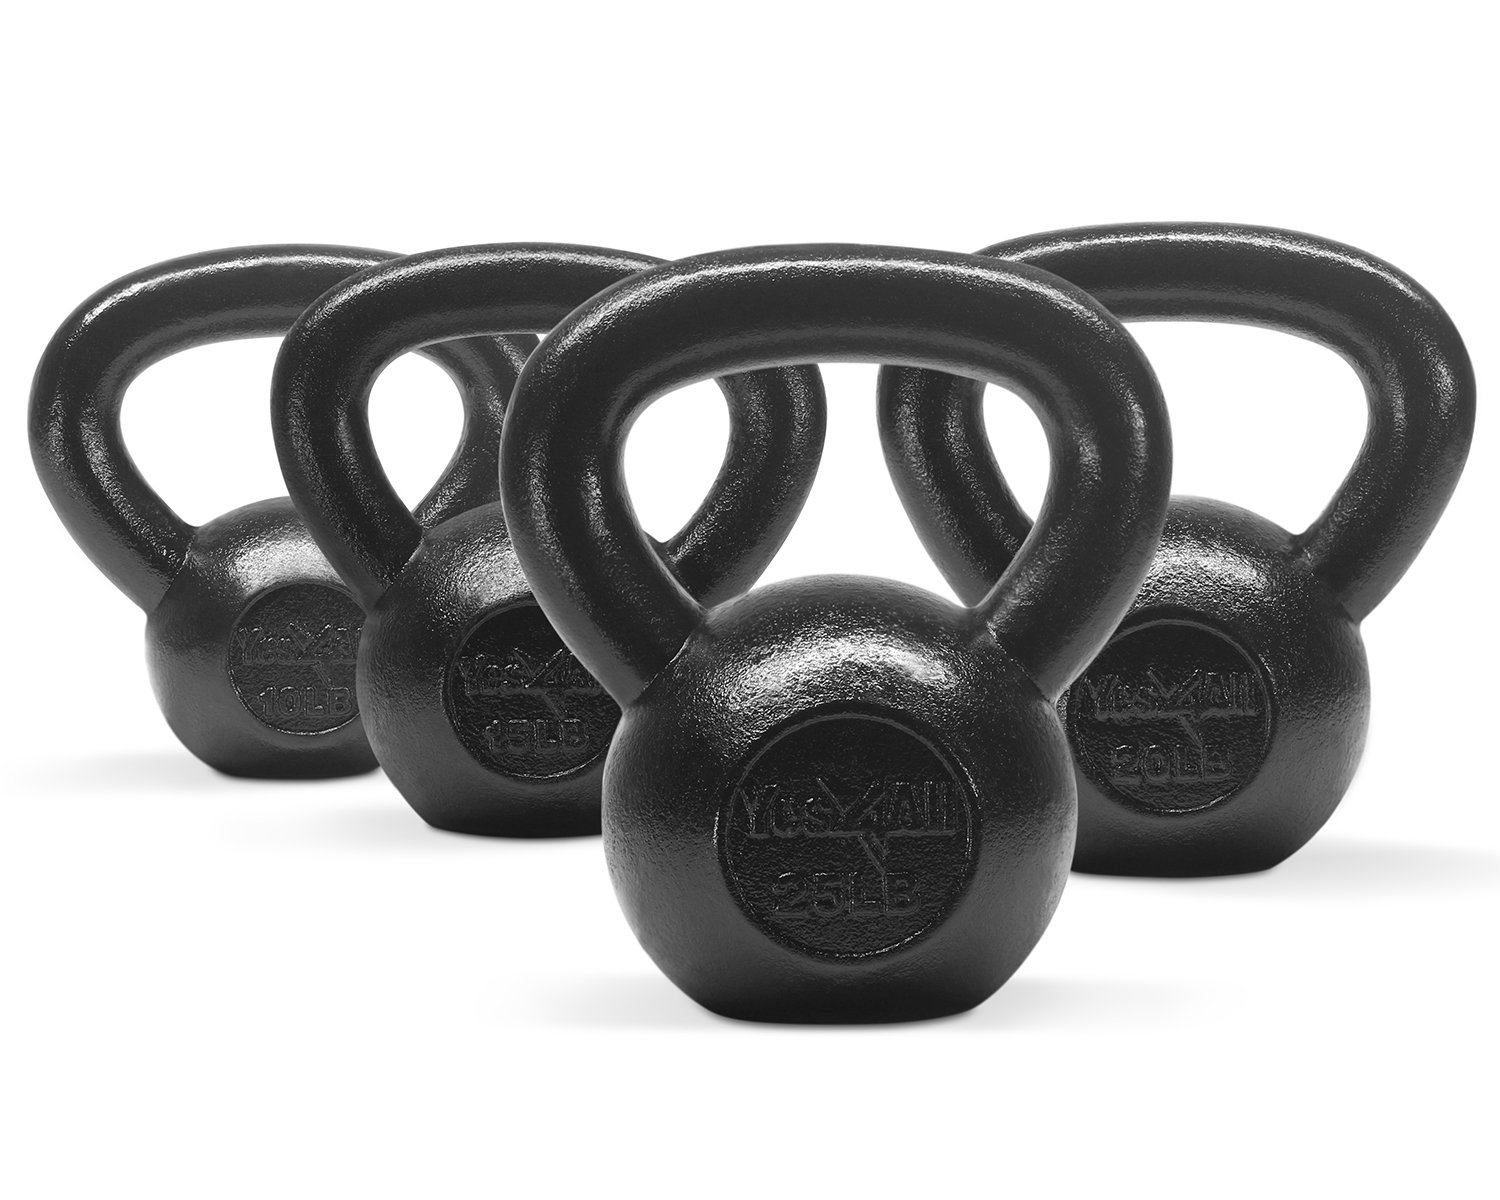 Yes4All Combo Cast Iron Kettlebell Weight Sets – Great for Full Body Workout and Strength Training – Kettlebells 10 15 20 25 lbs (Black)